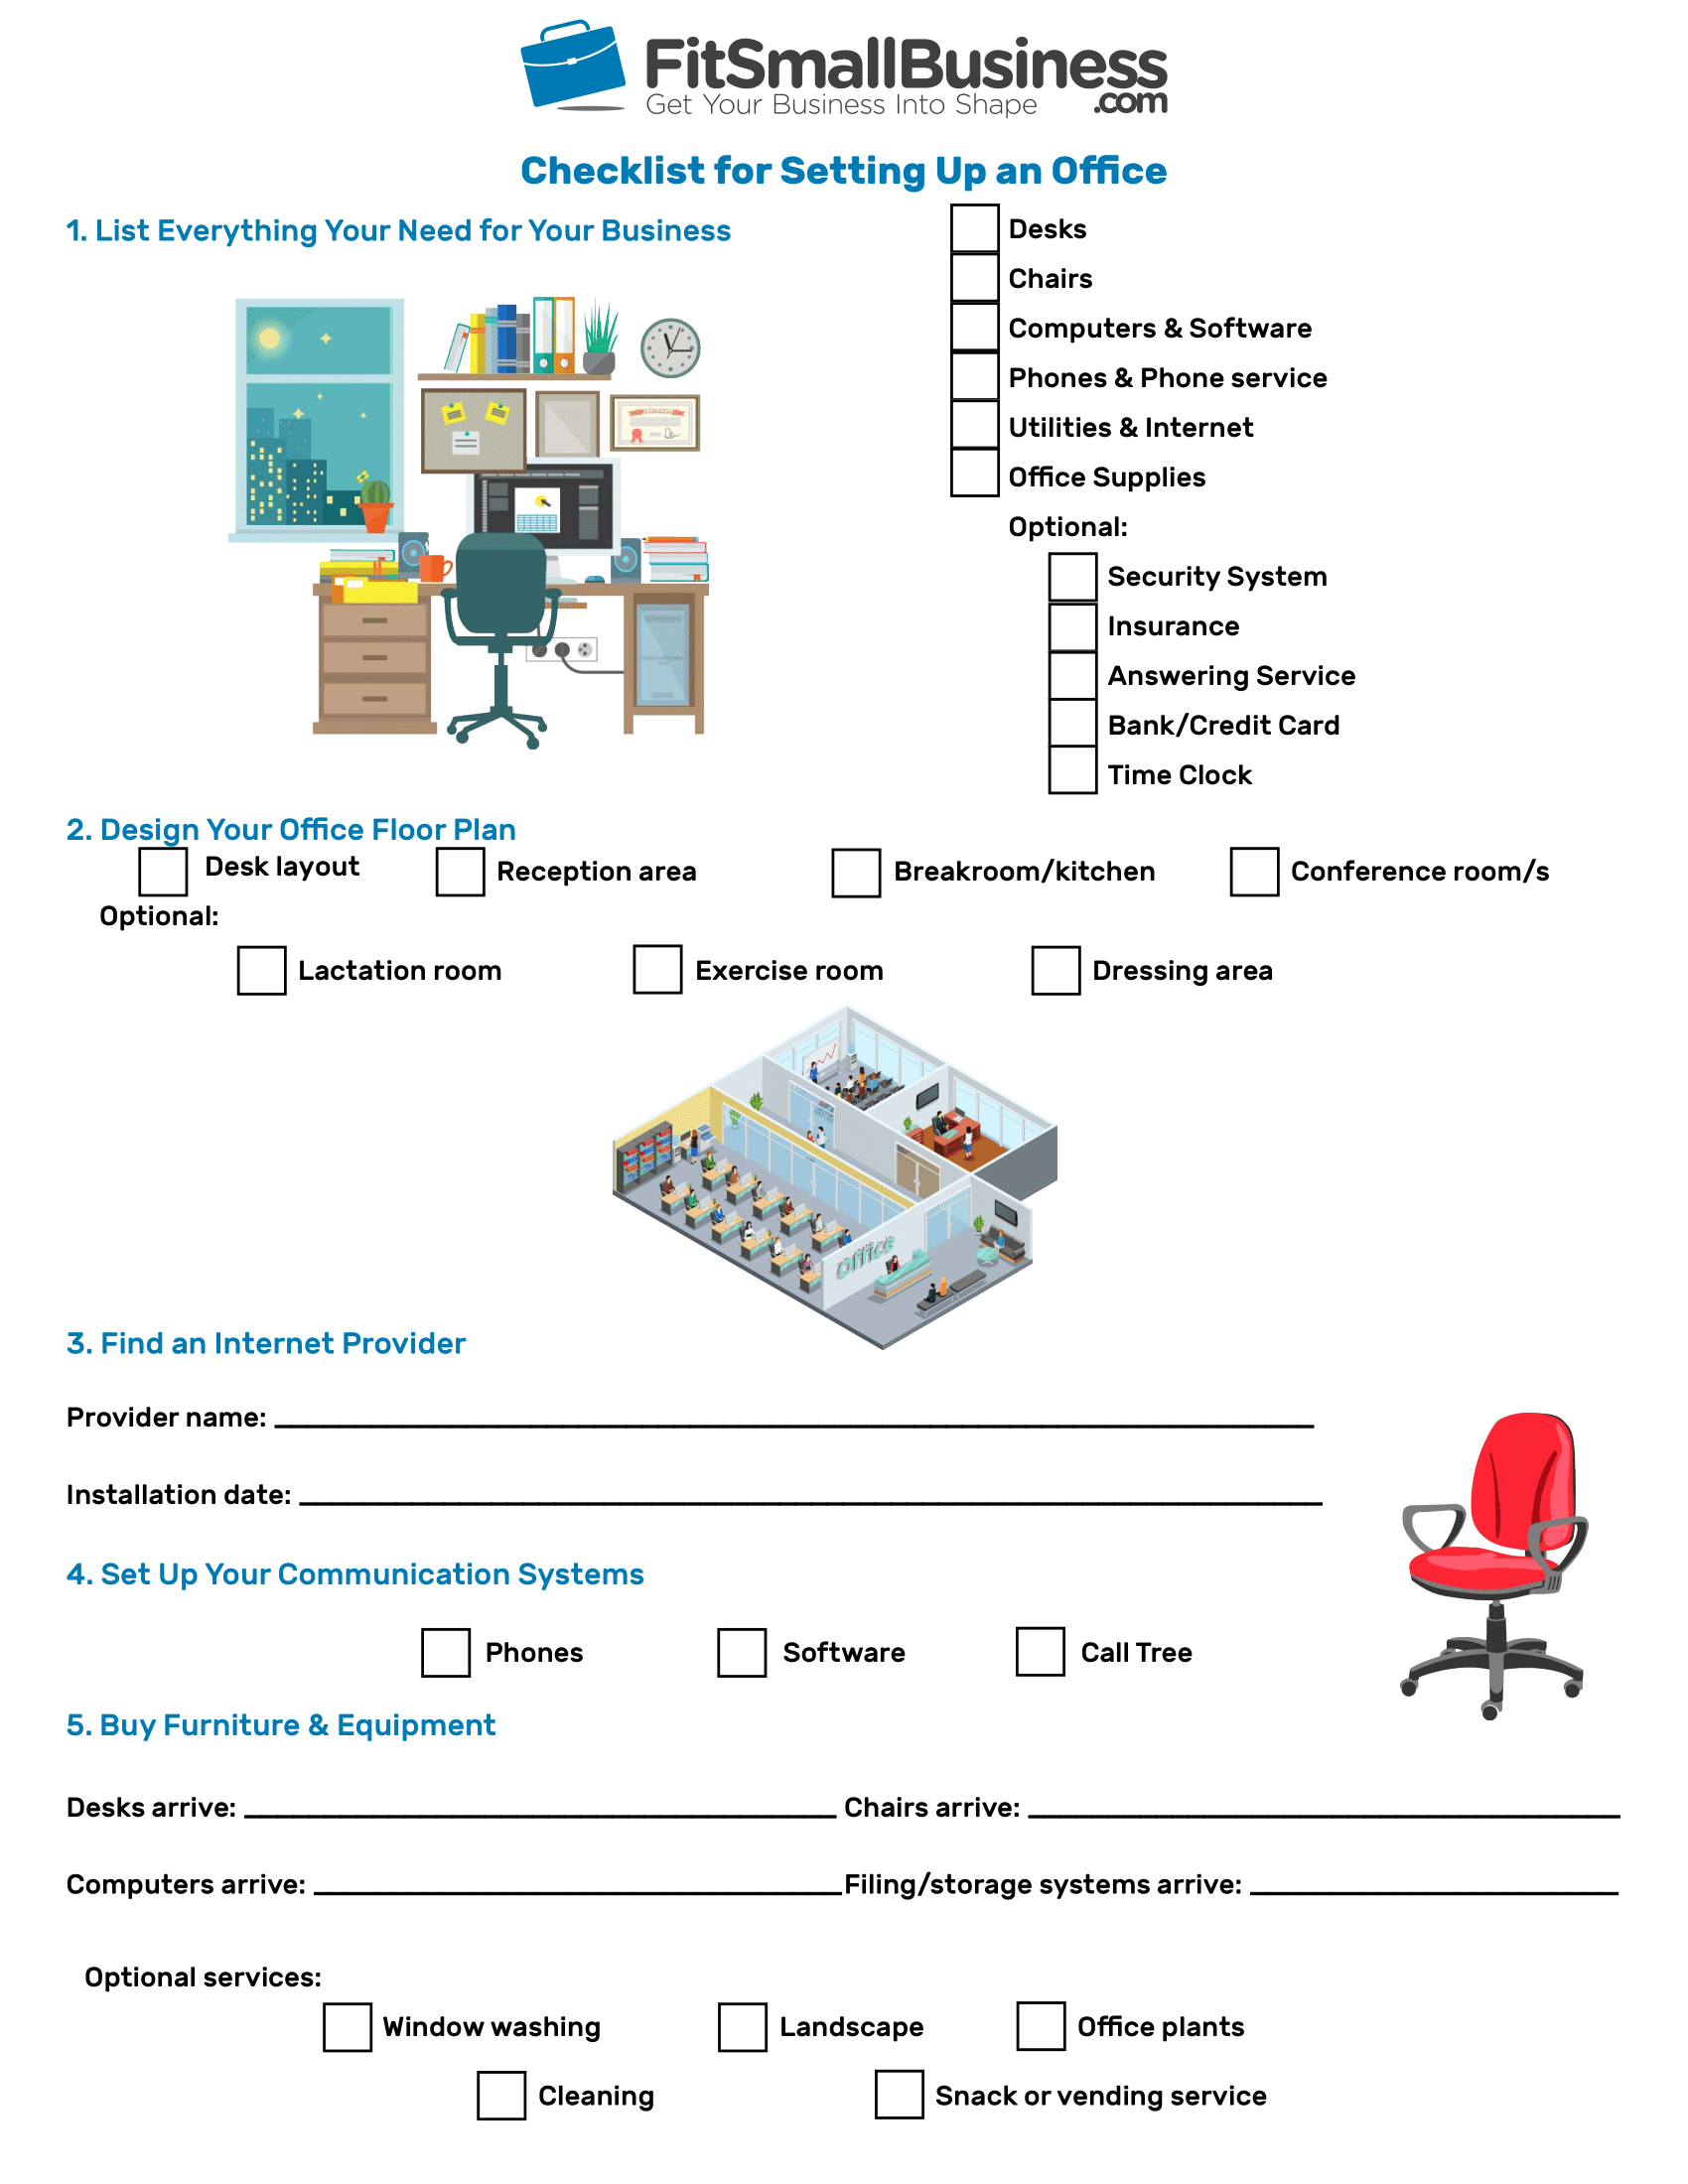 Setting Up an Office in 5 Steps [+Free Checklist]